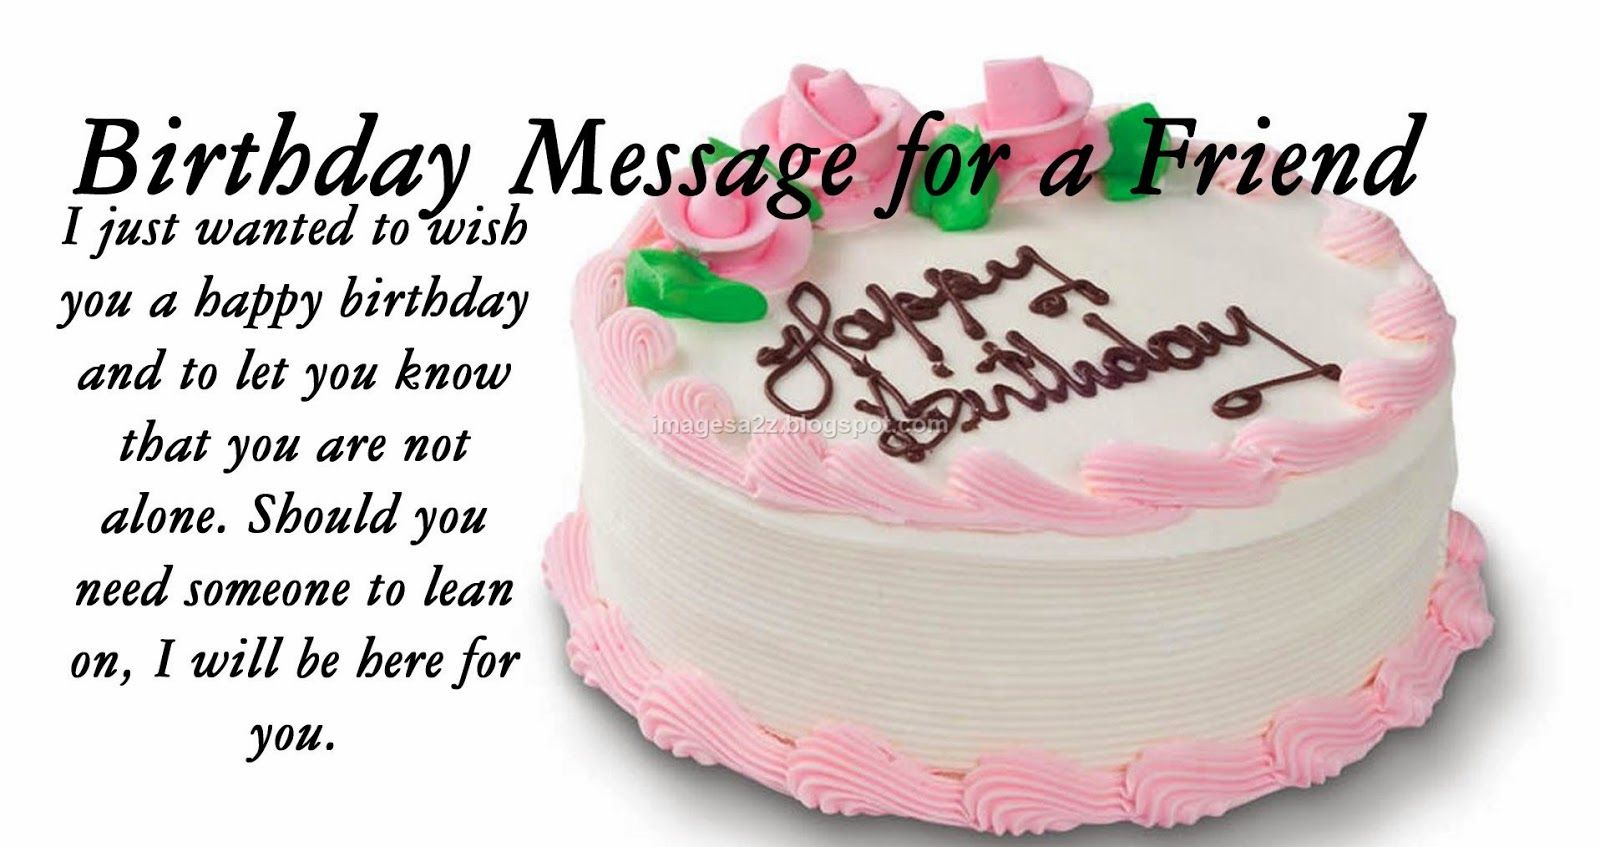 Happy Birthday Cakes With Quotes For Friend 2